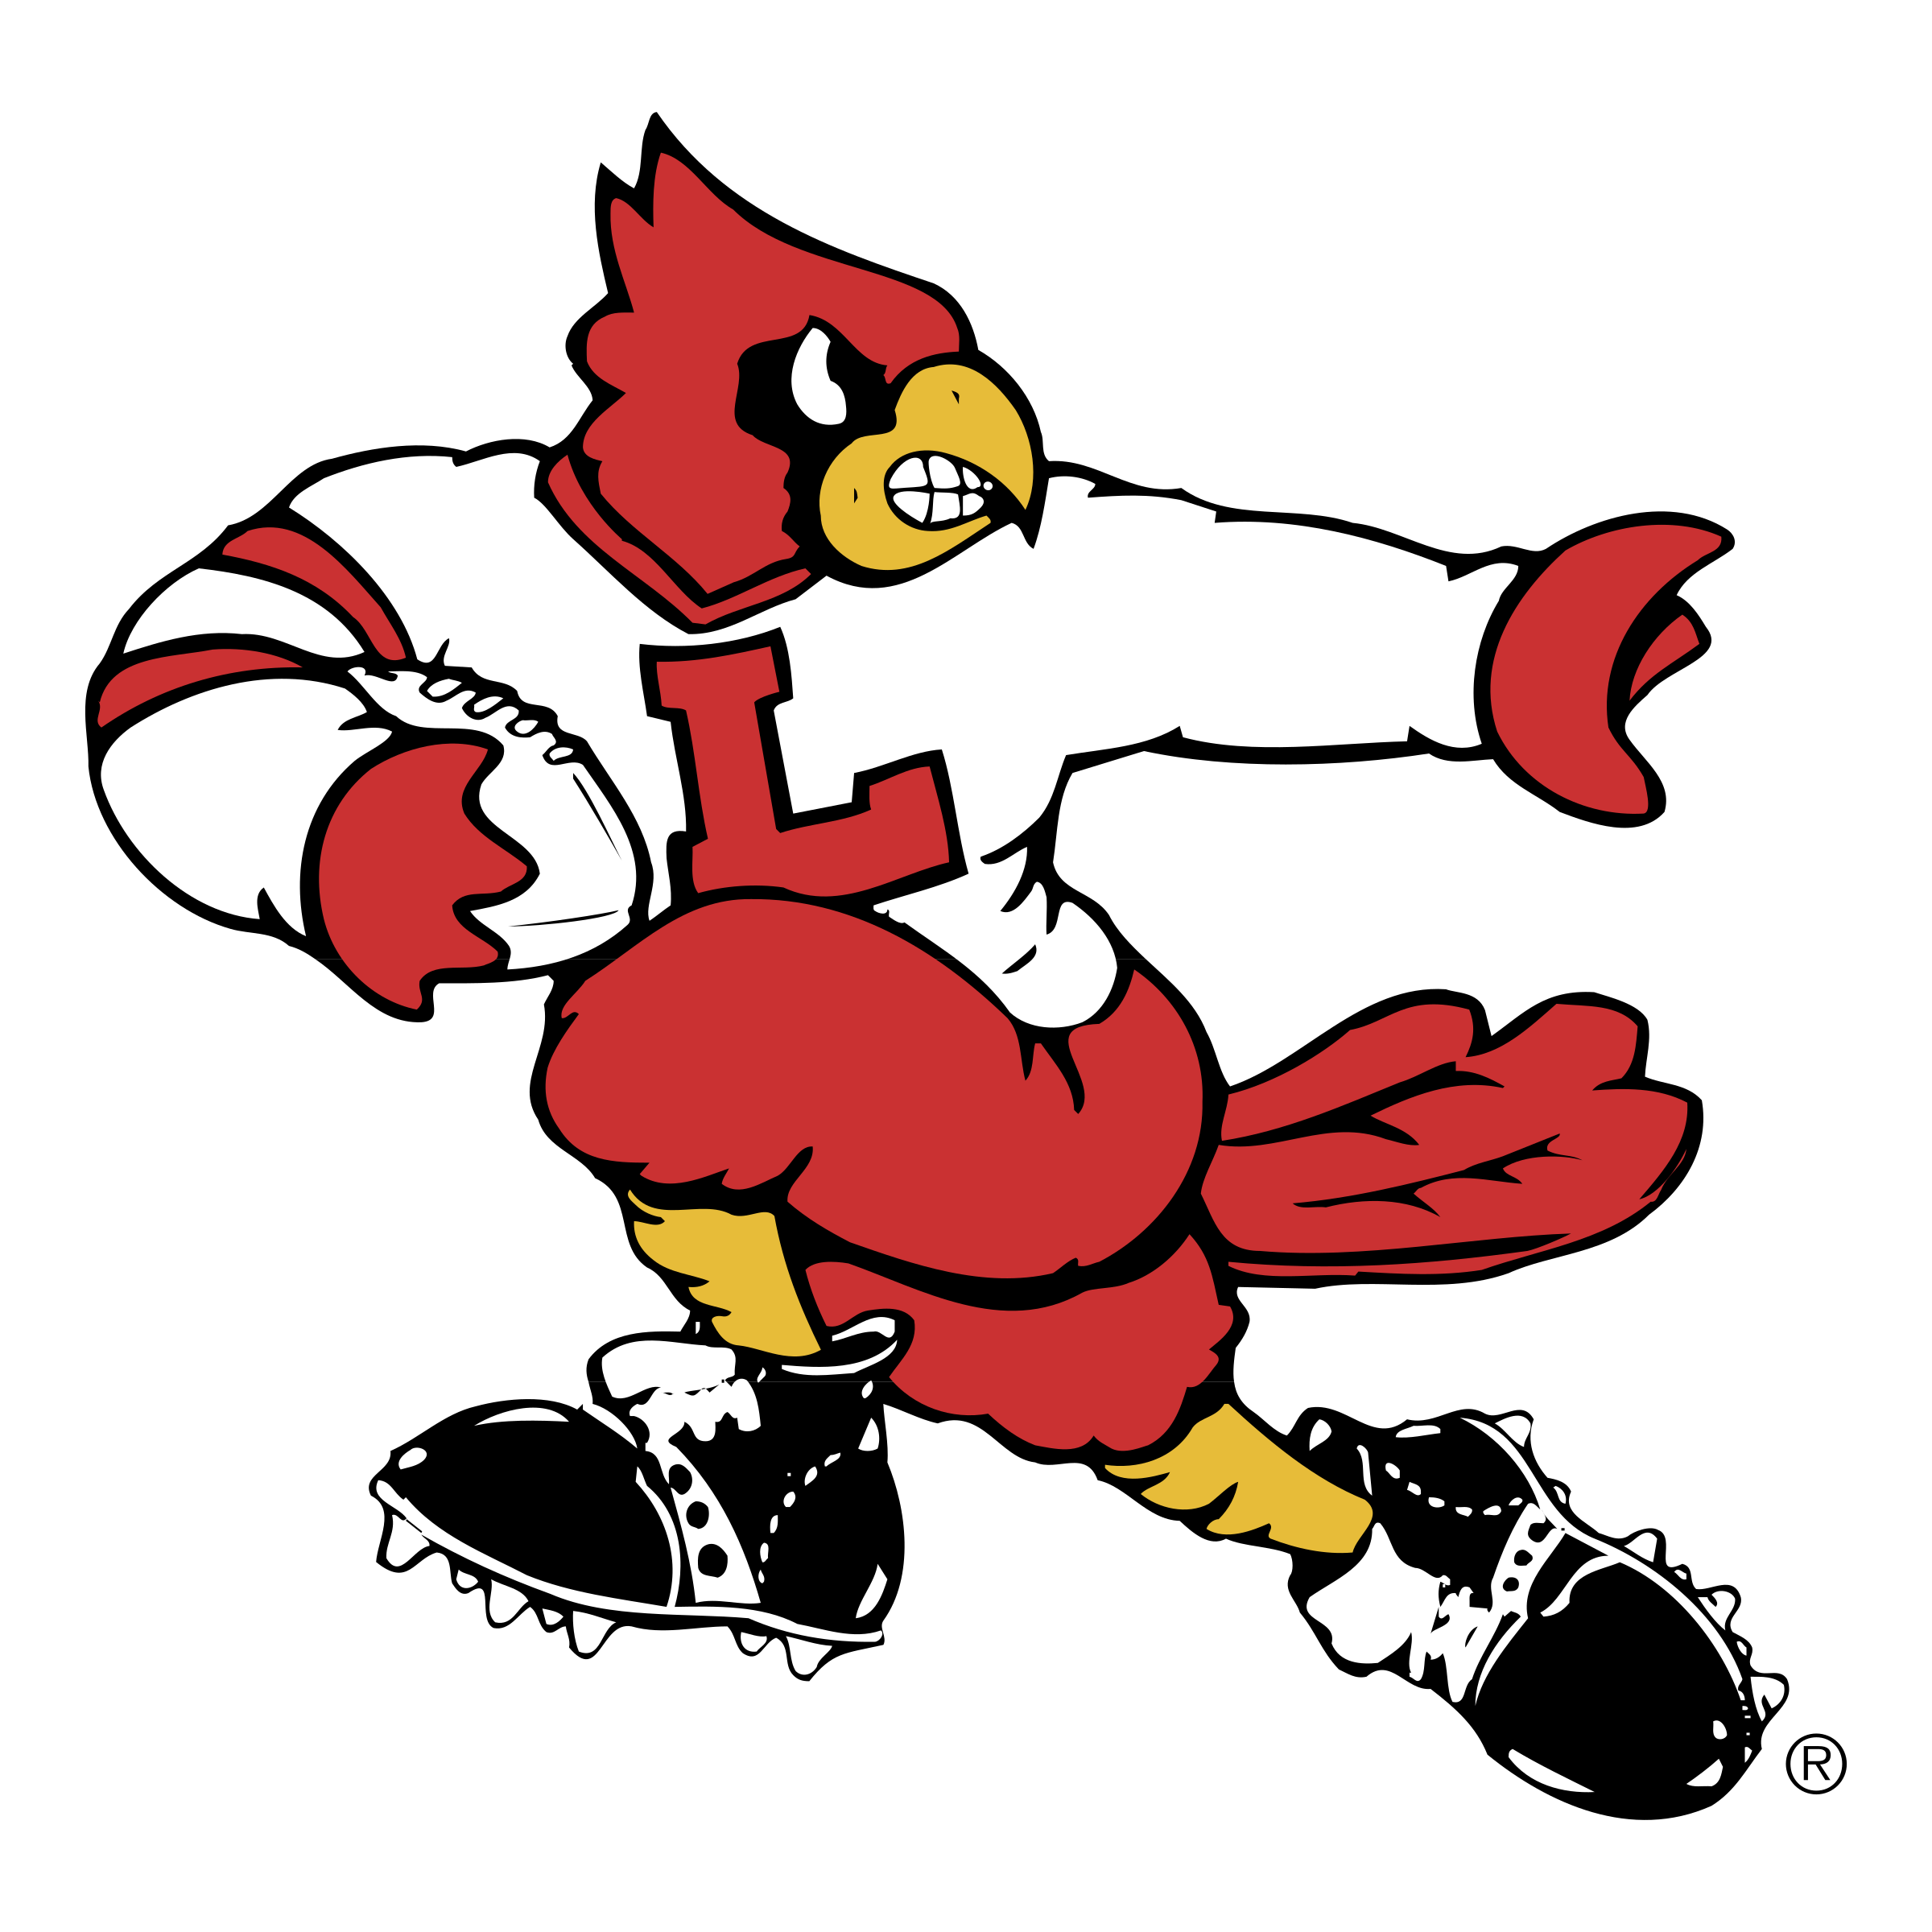 Cardinals baseball cap clipart graphic freeuse Louisville Cardinals Clipart at GetDrawings.com | Free for personal ... graphic freeuse